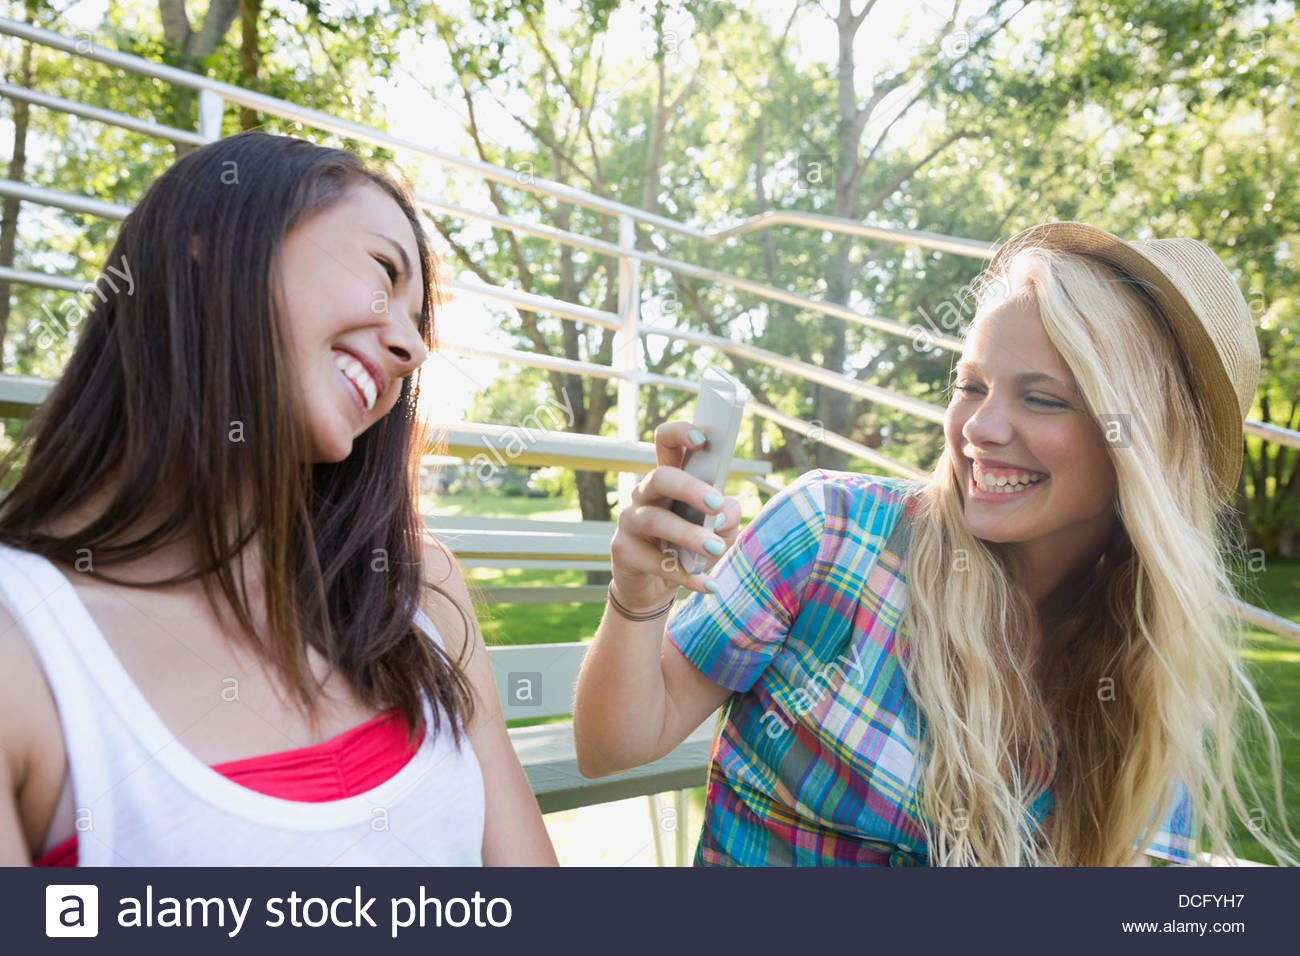 Teenage girl taking picture of friend on smart phone - Stock Photo